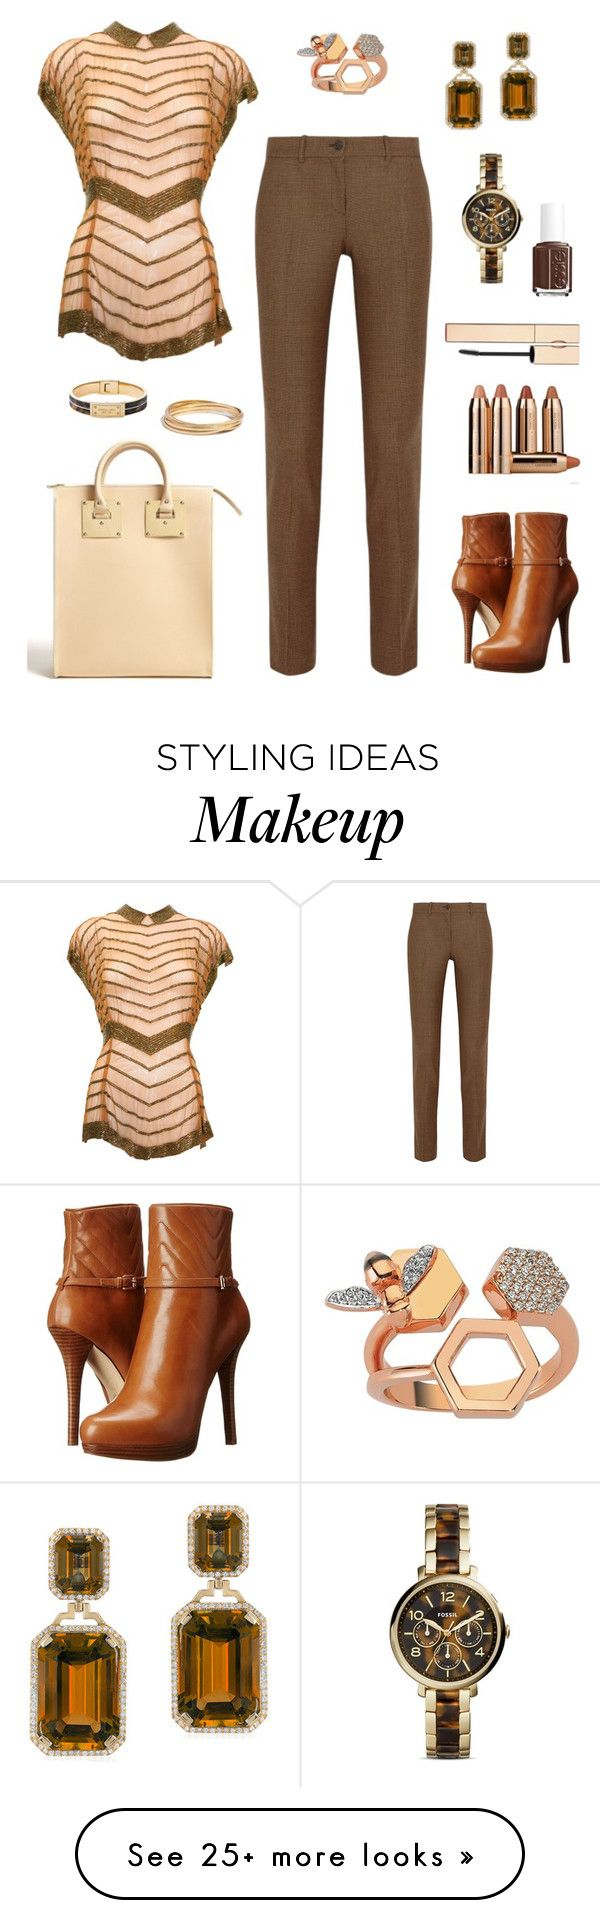 """Chevron Outfit Only Contest"" by tippi-h on Polyvore featuring Michael Kors, MICHAEL Michael Kors, Bee Goddess, Madewell, Goshwara, FOSSIL, Sephora Collection, Essie and Clarins"